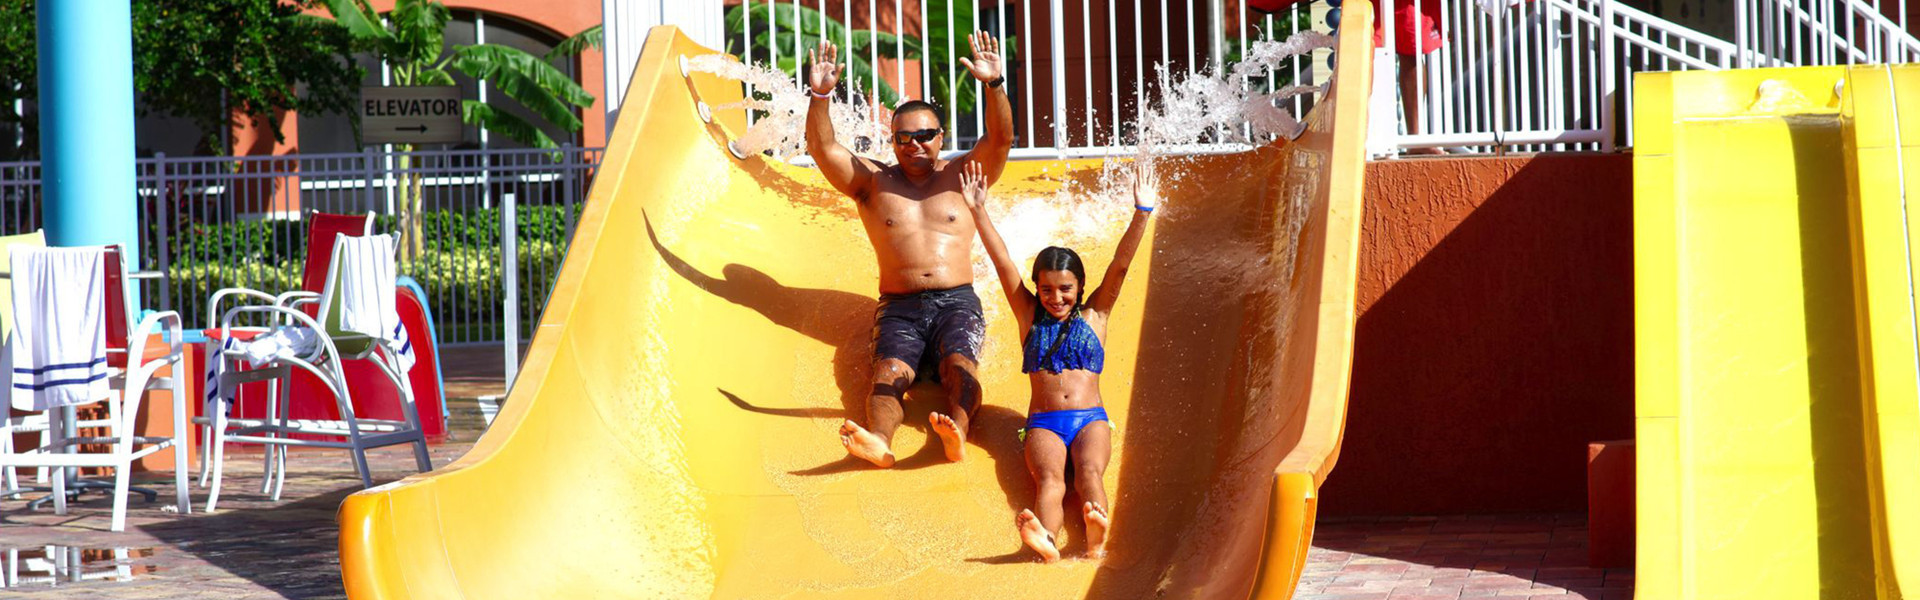 Shipwreck Island Water Park Kissimmee | Family on Waterslide